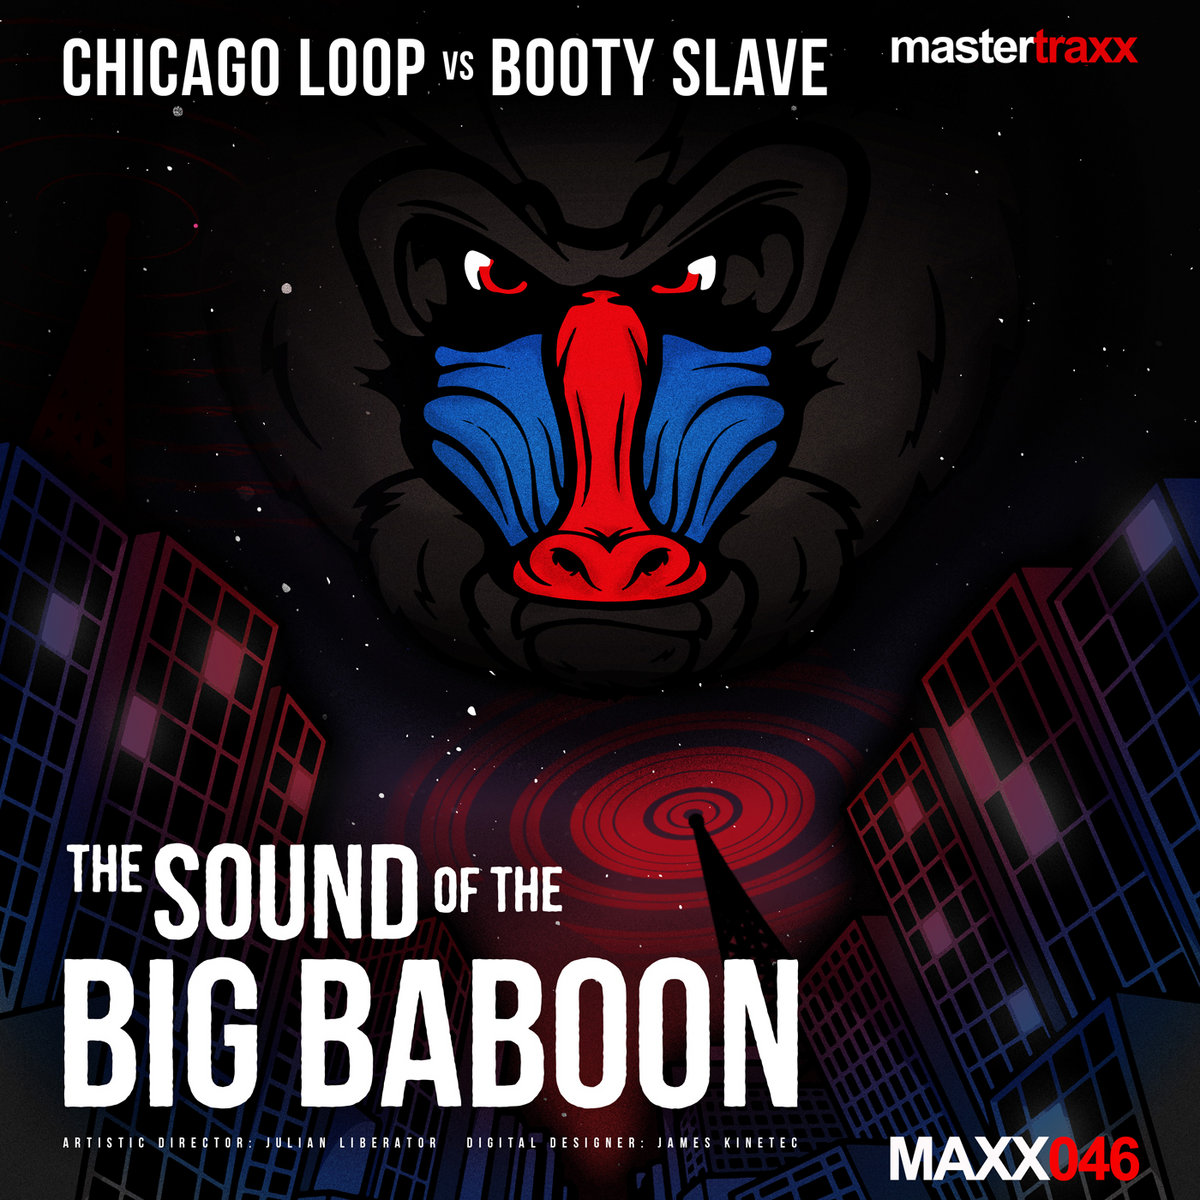 Sound of the Big Baboon | mastertraxx